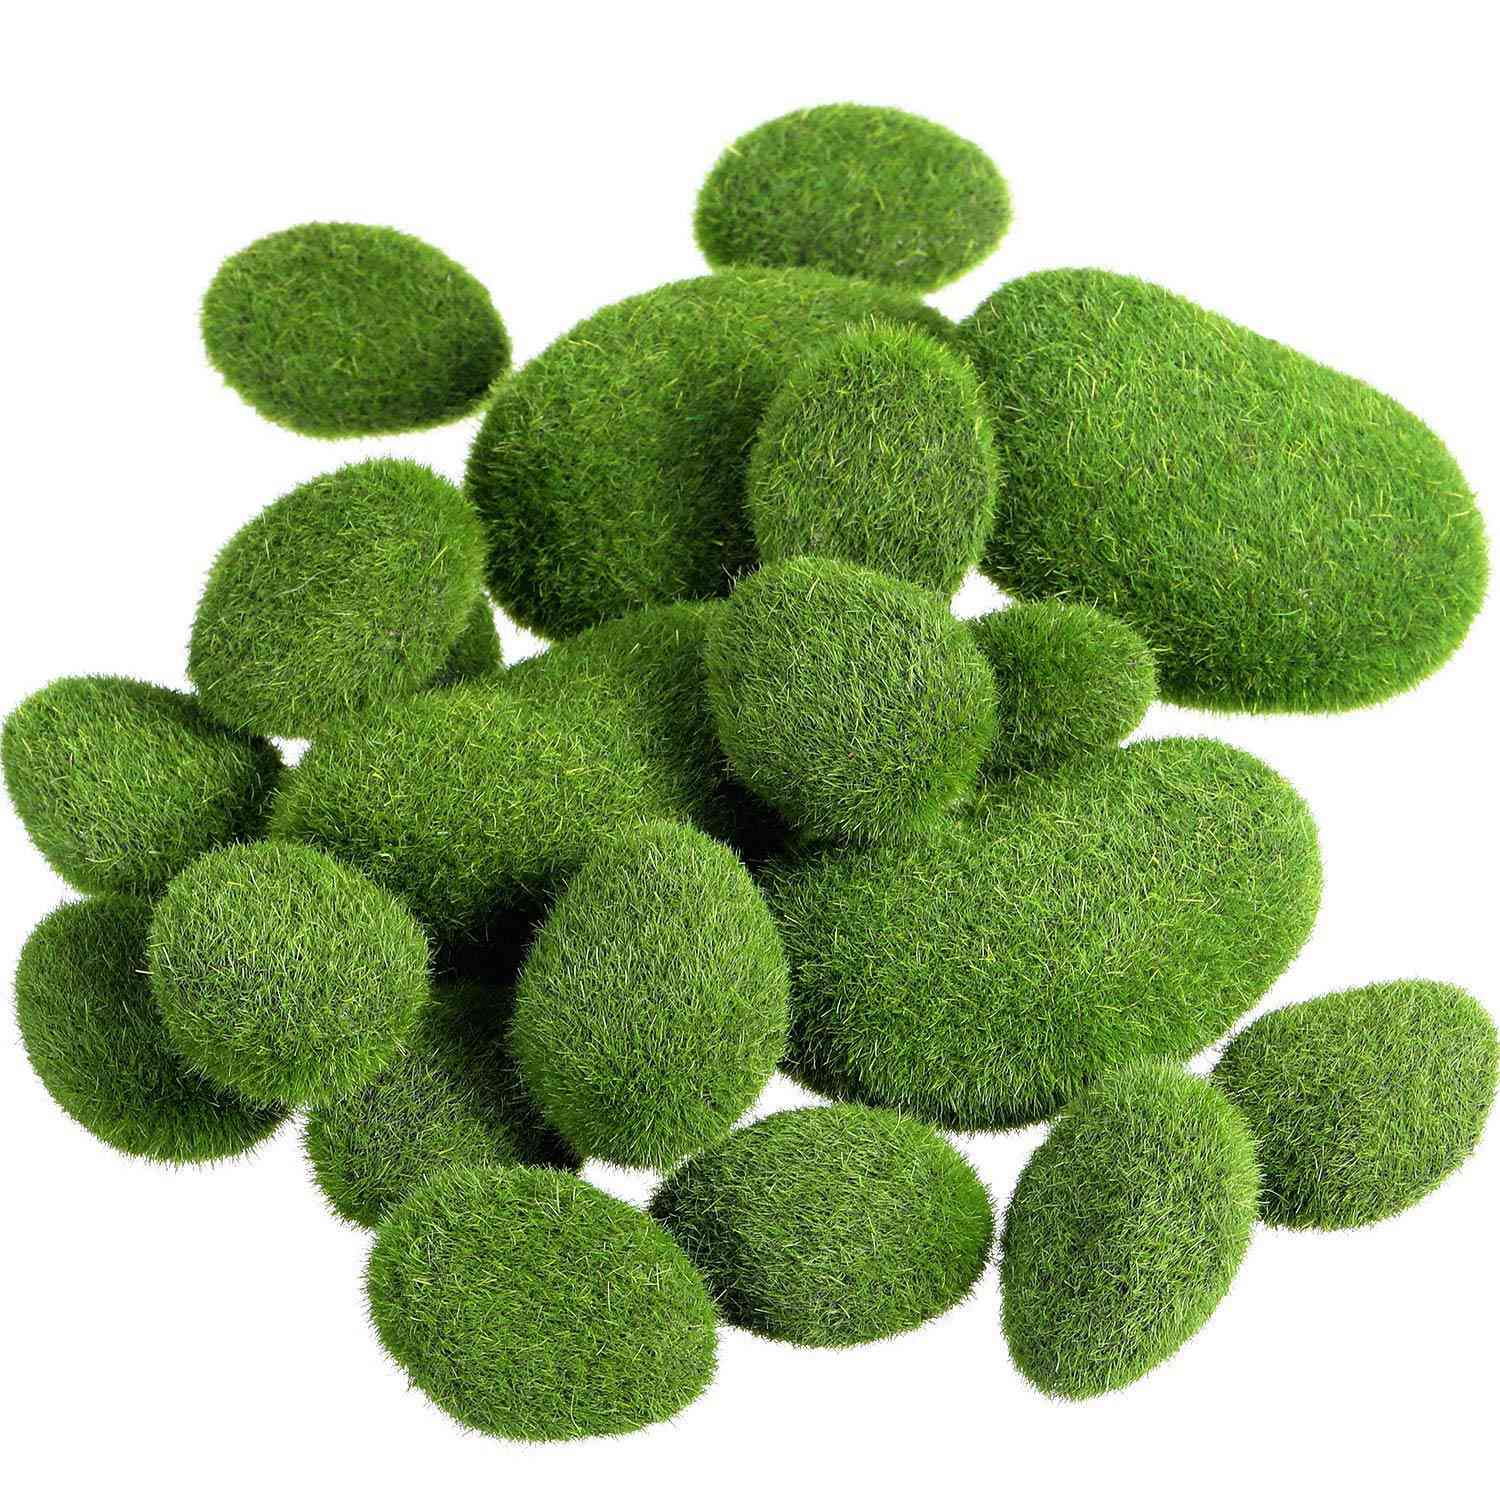 20 Pieces 2 Sizes Artificial Moss Rocks Decorative Faux Green Moss Covered Stones